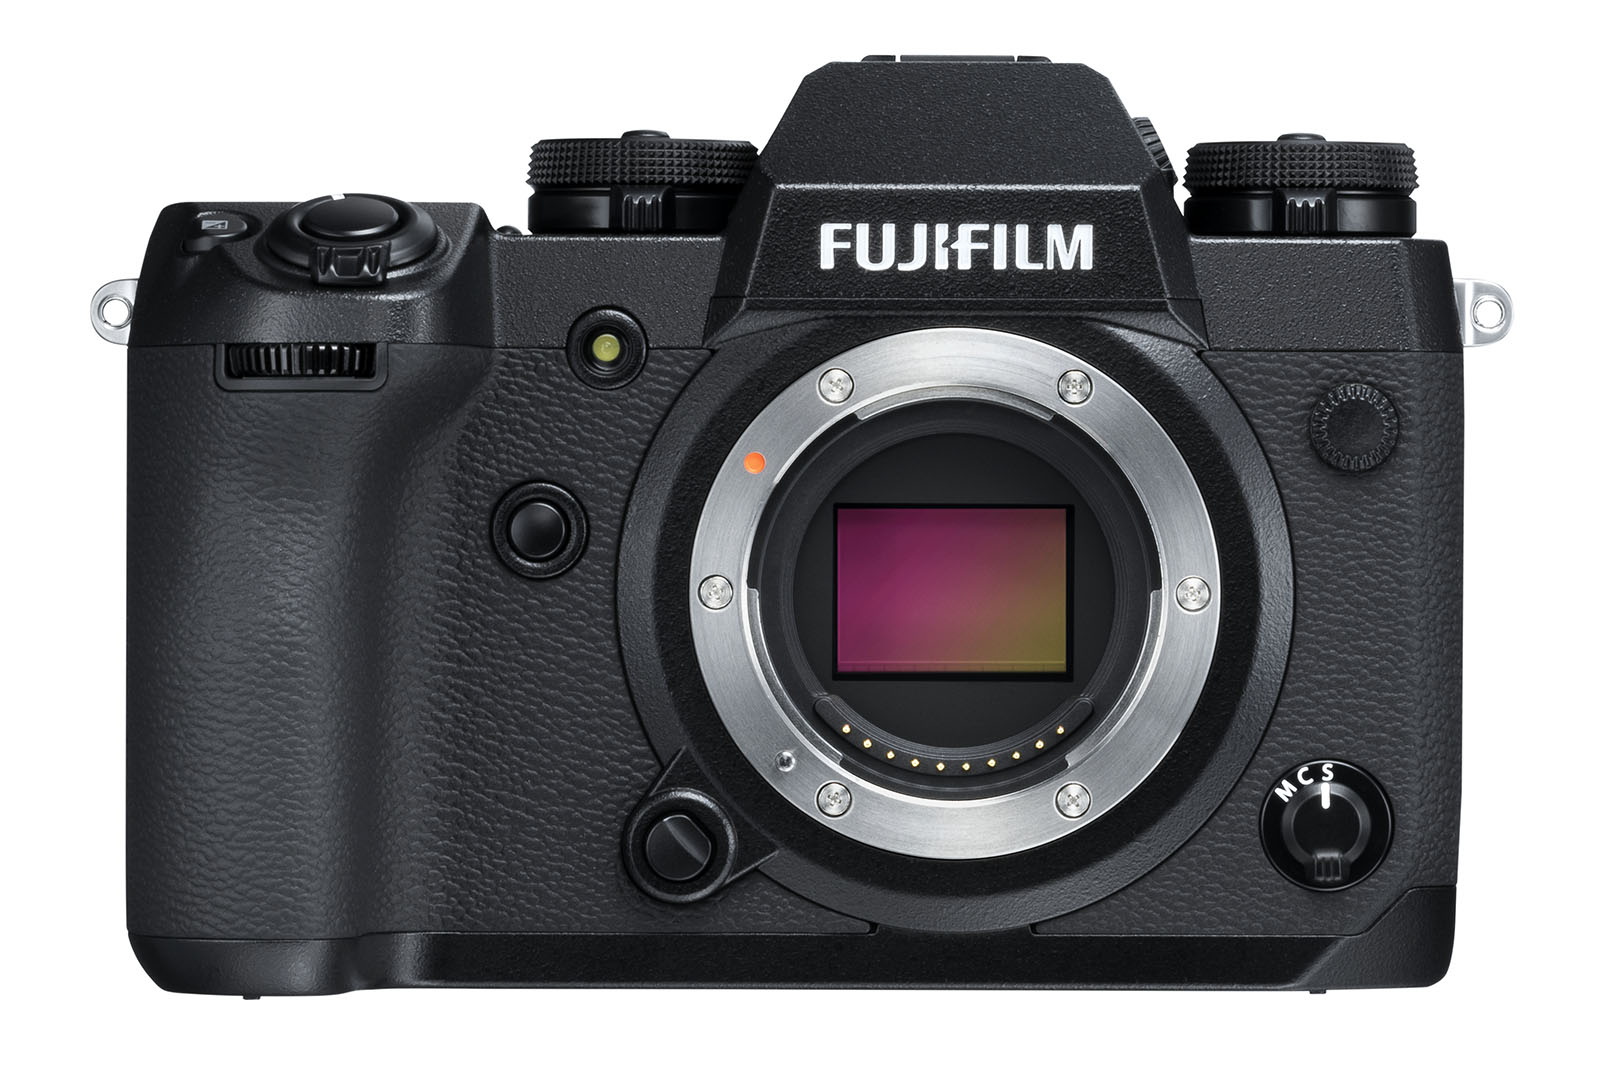 Fujifilm's X Series mirrorless camera range gets a new flagship